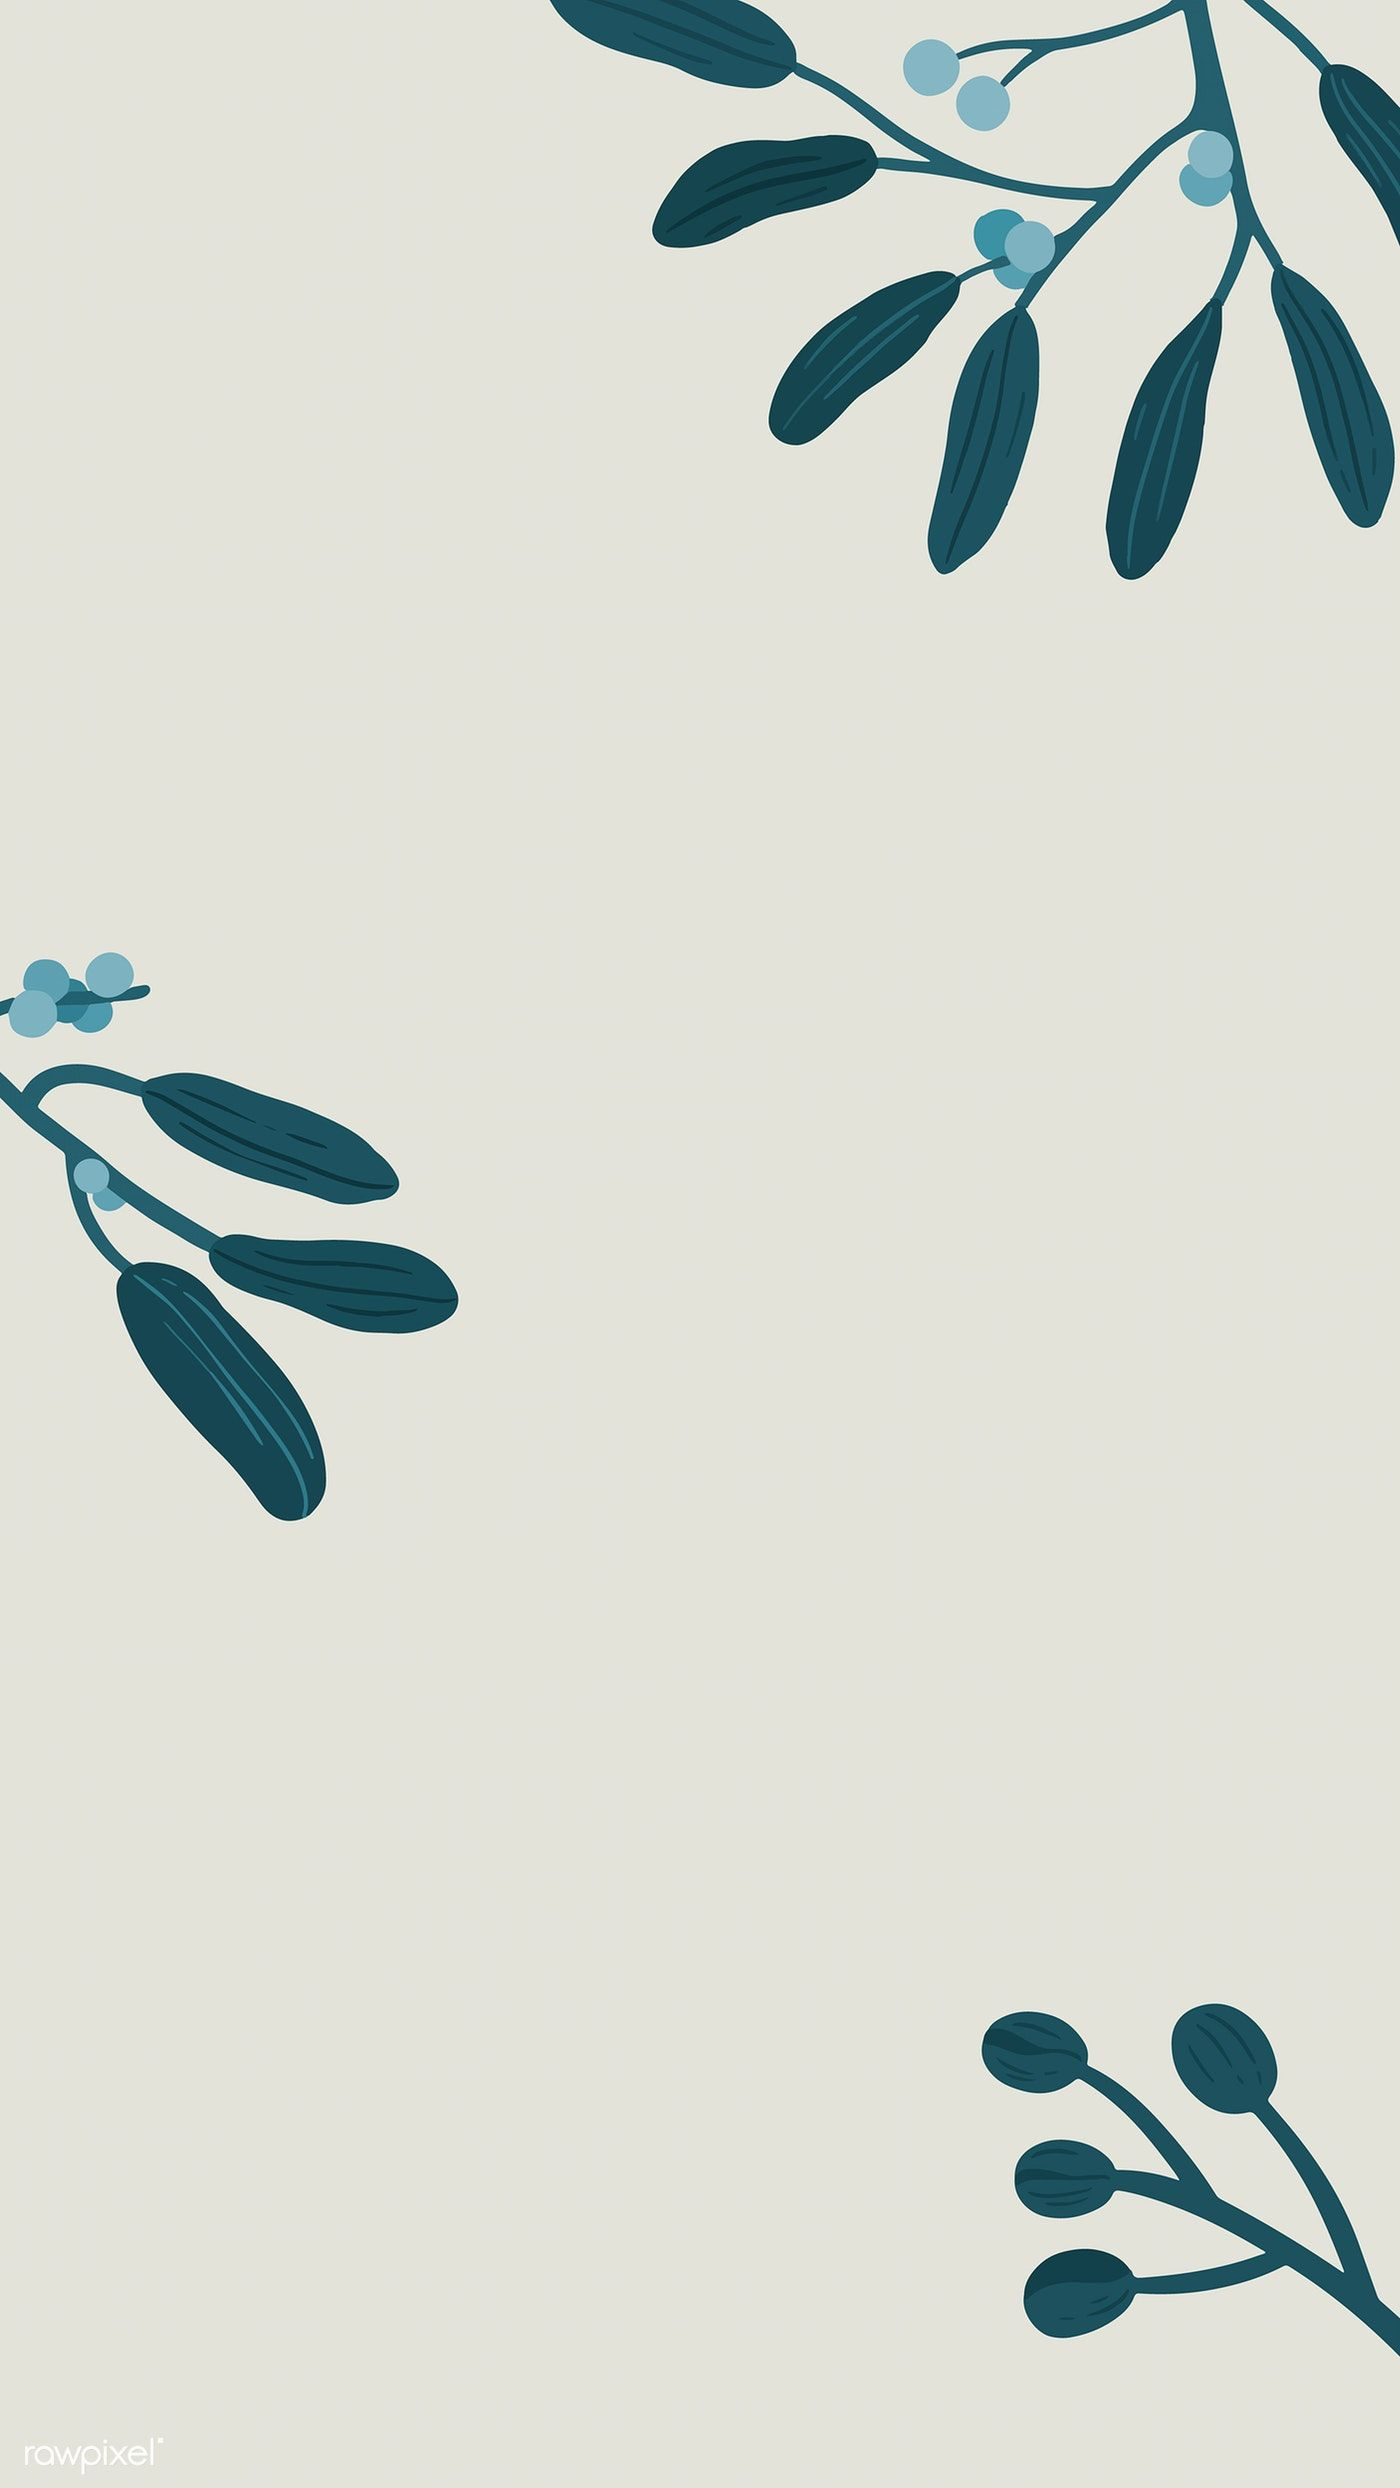 Botanical flower copy space on a gray phone background